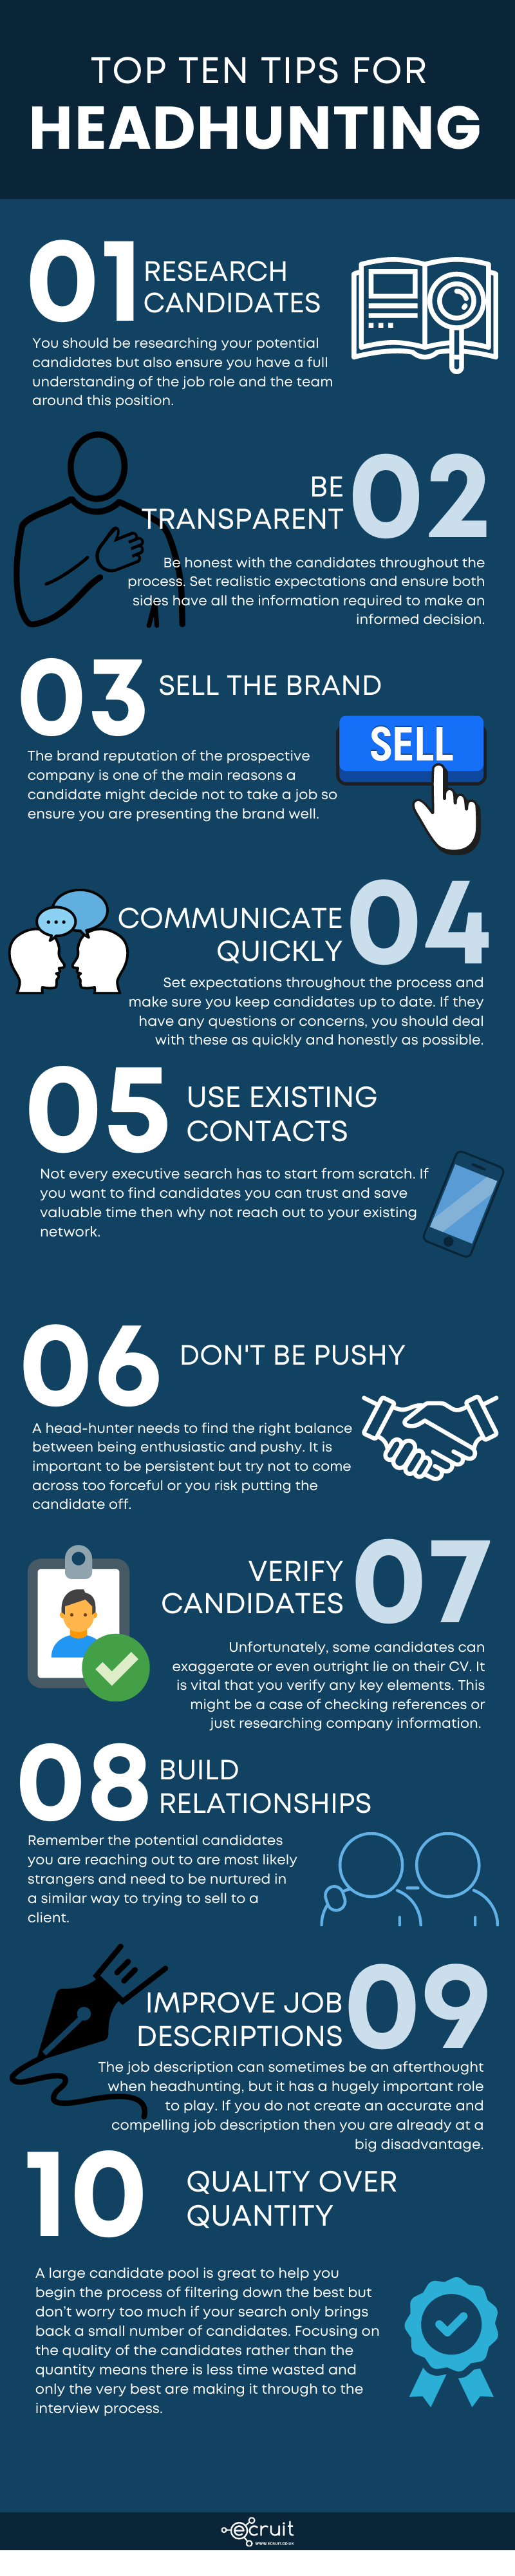 Top 10 Tips For Headhunting Infographic